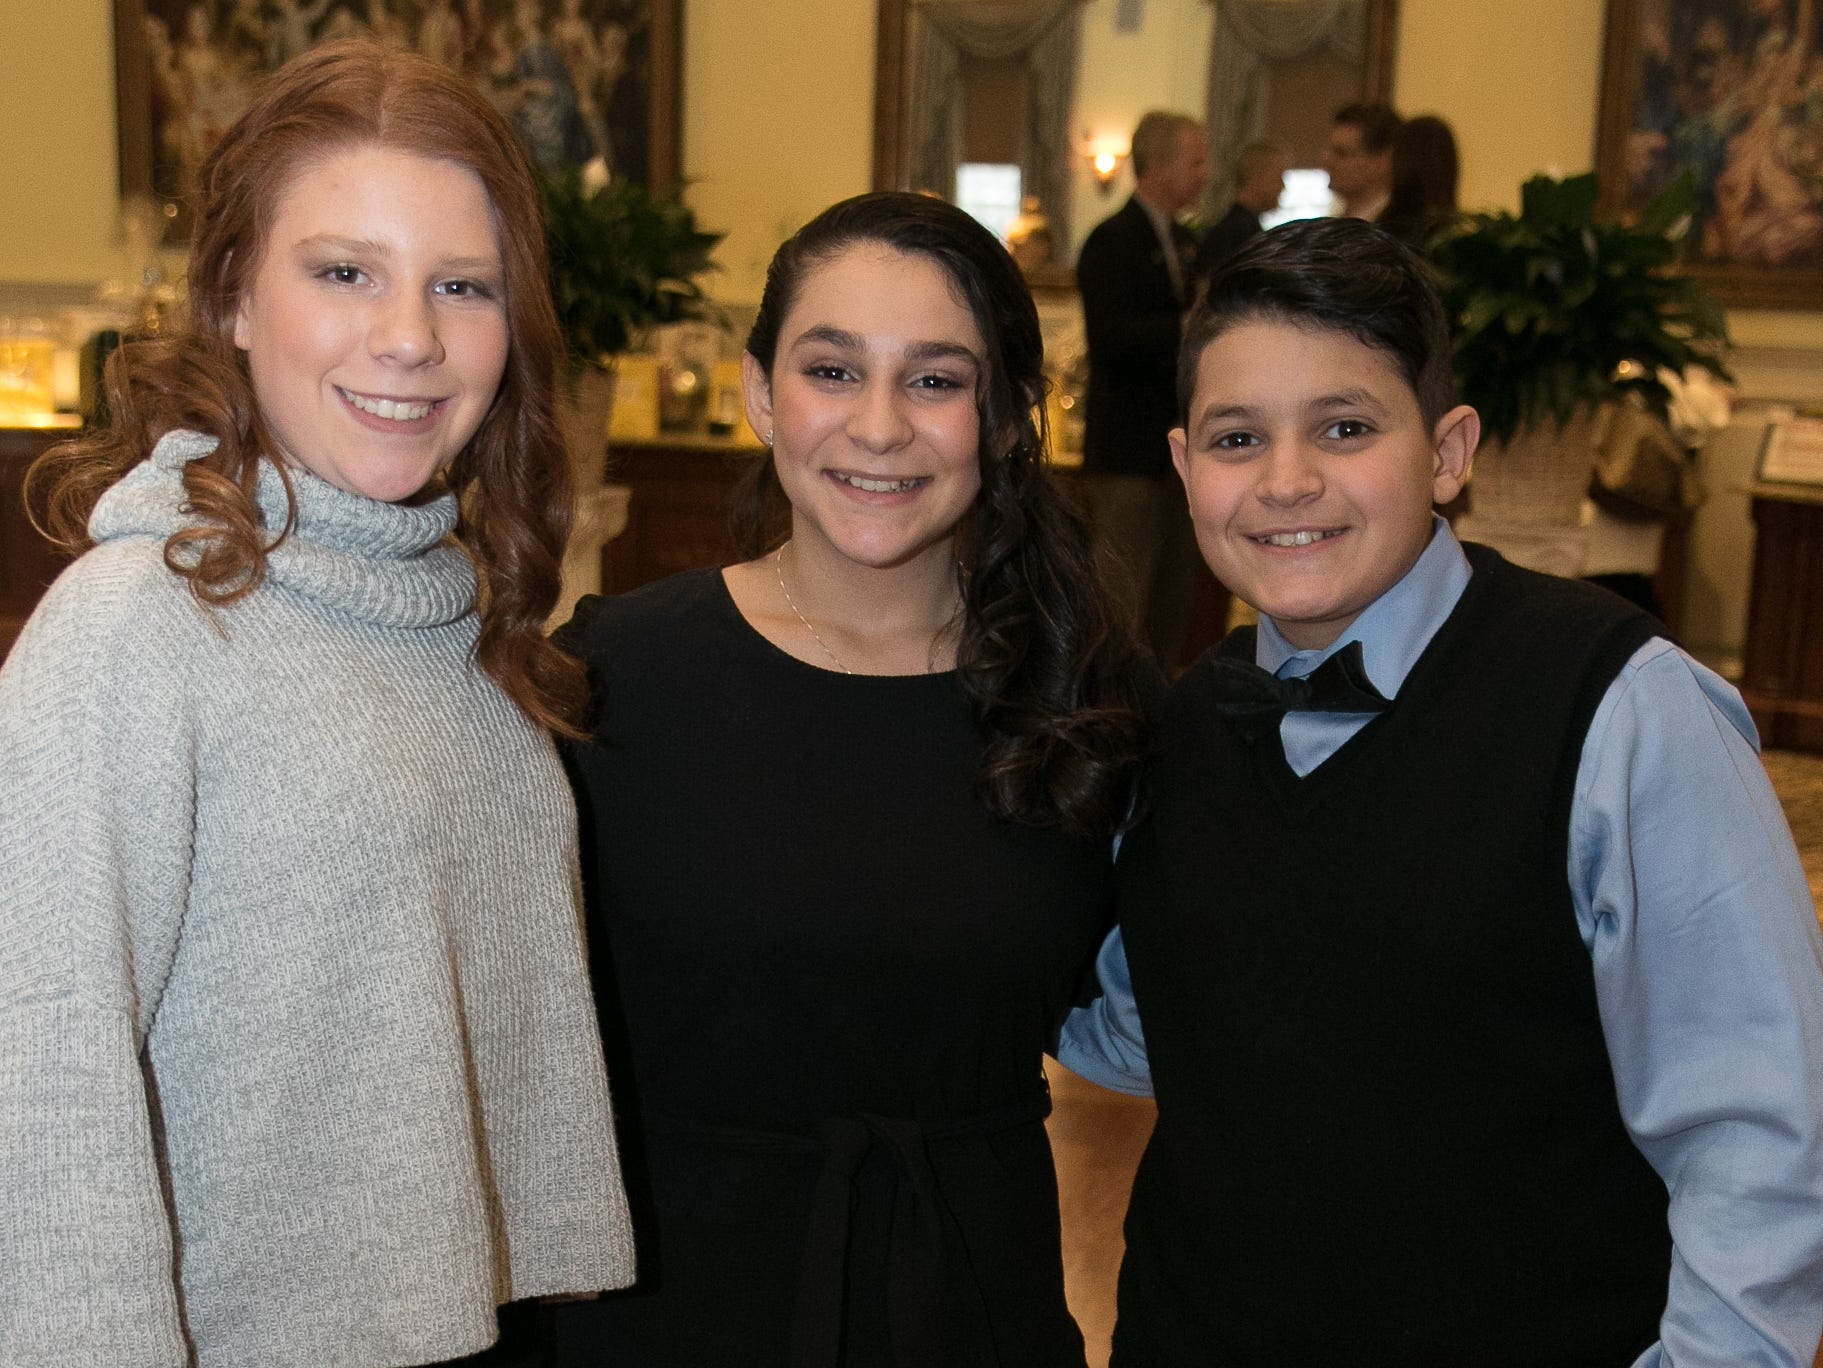 Caterina, Victoria, Alexander. The Midland Park Ramapo Eisenhower React/ Interact Clubs held it's sixth Annual fashion show and tricky tray at The Brick House in Wyckoff. 01/27/2019